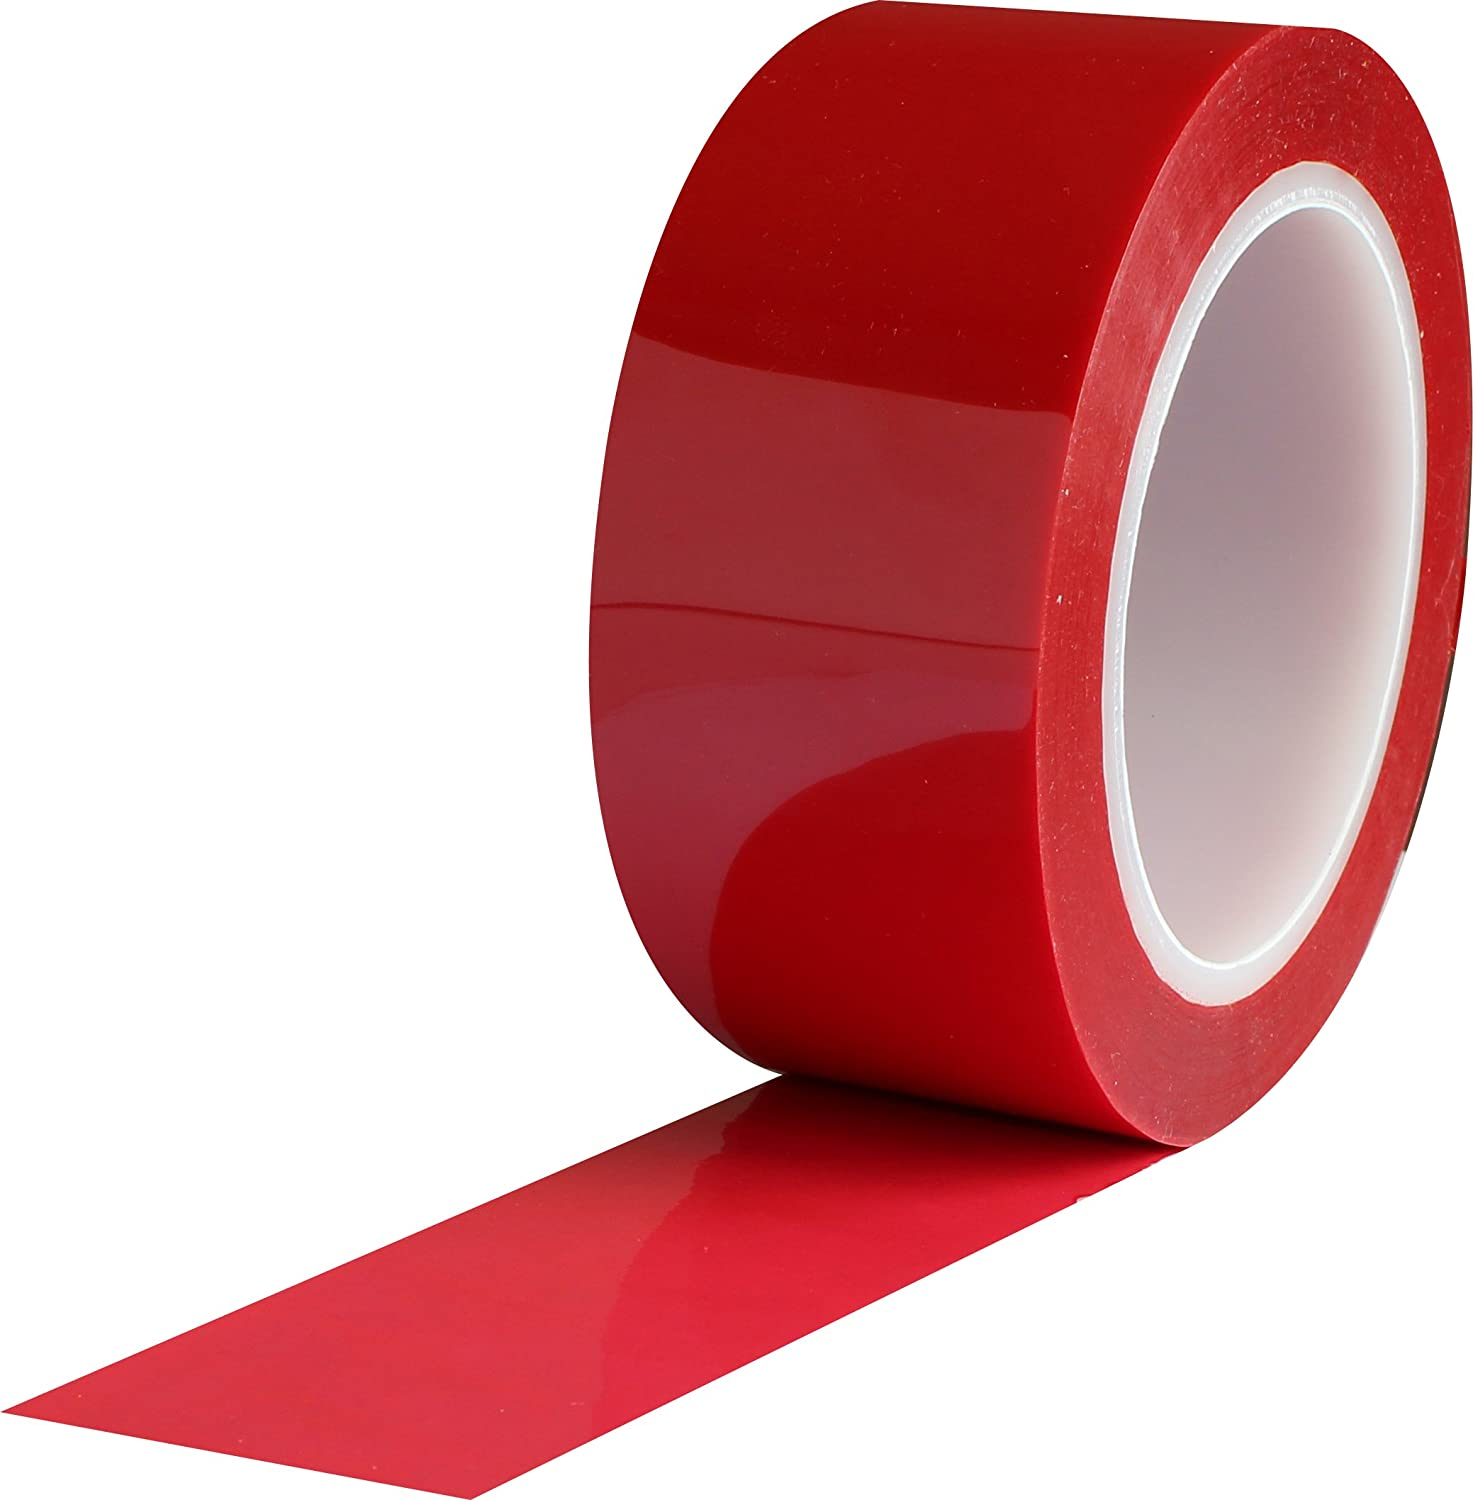 ProTapes Pro 980 Polyester Film Tape Pack of 1 72 yds Length x 3 Width ProTapes /& Specialties Pro-980-3-3x72-R 4200V Dielectric Strength 72 yds Length x 3 Width Red